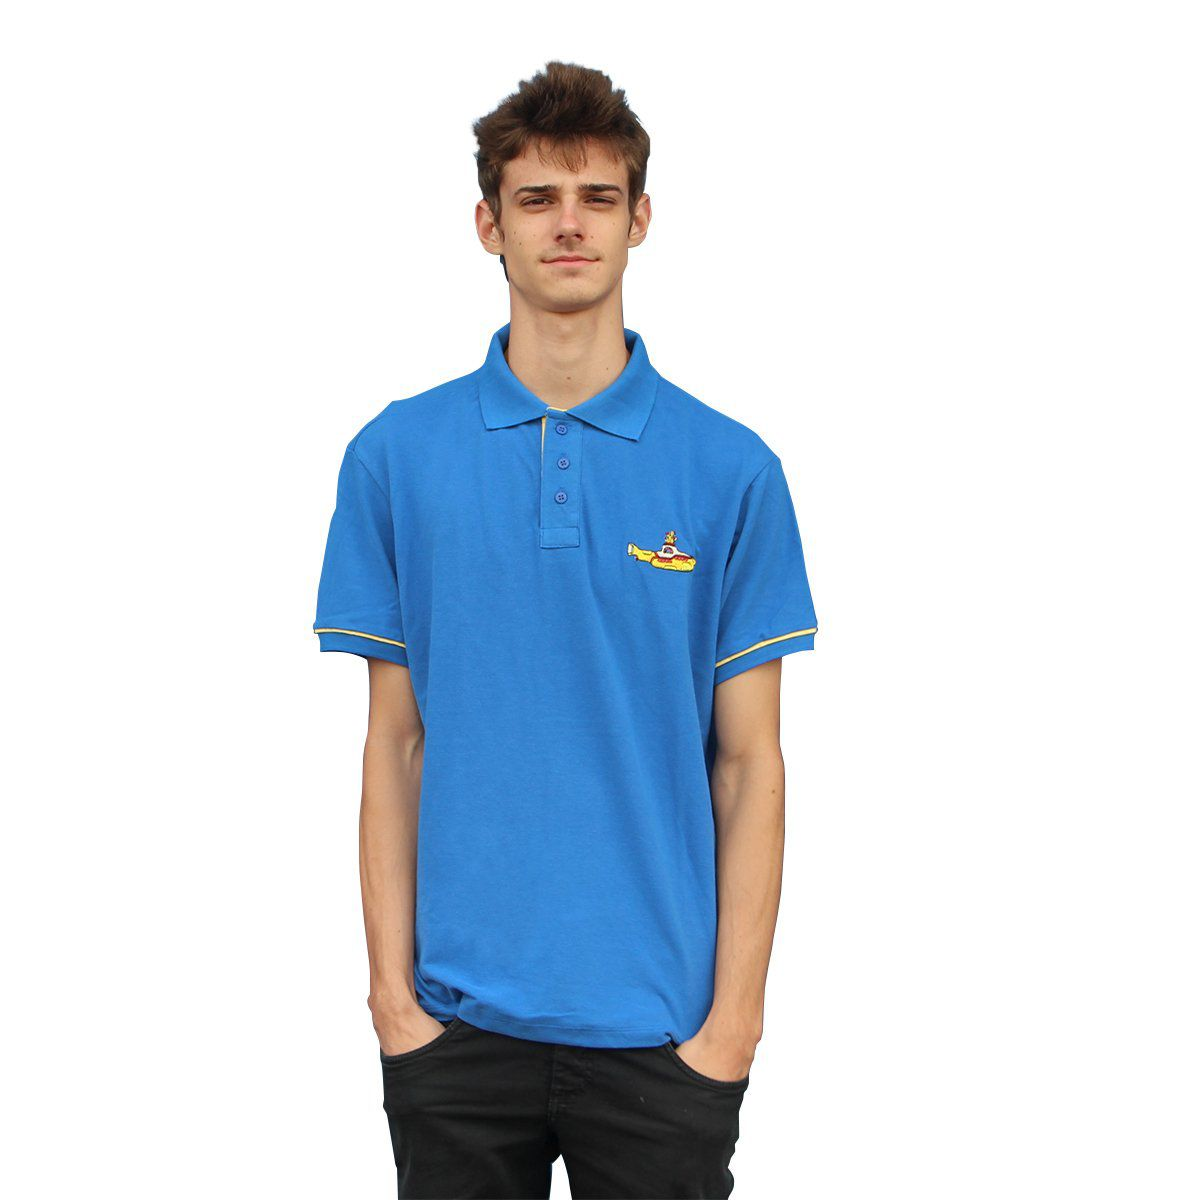 Camisa Polo The Beatles Yellow Submarine  - bandUP Store Marketplace